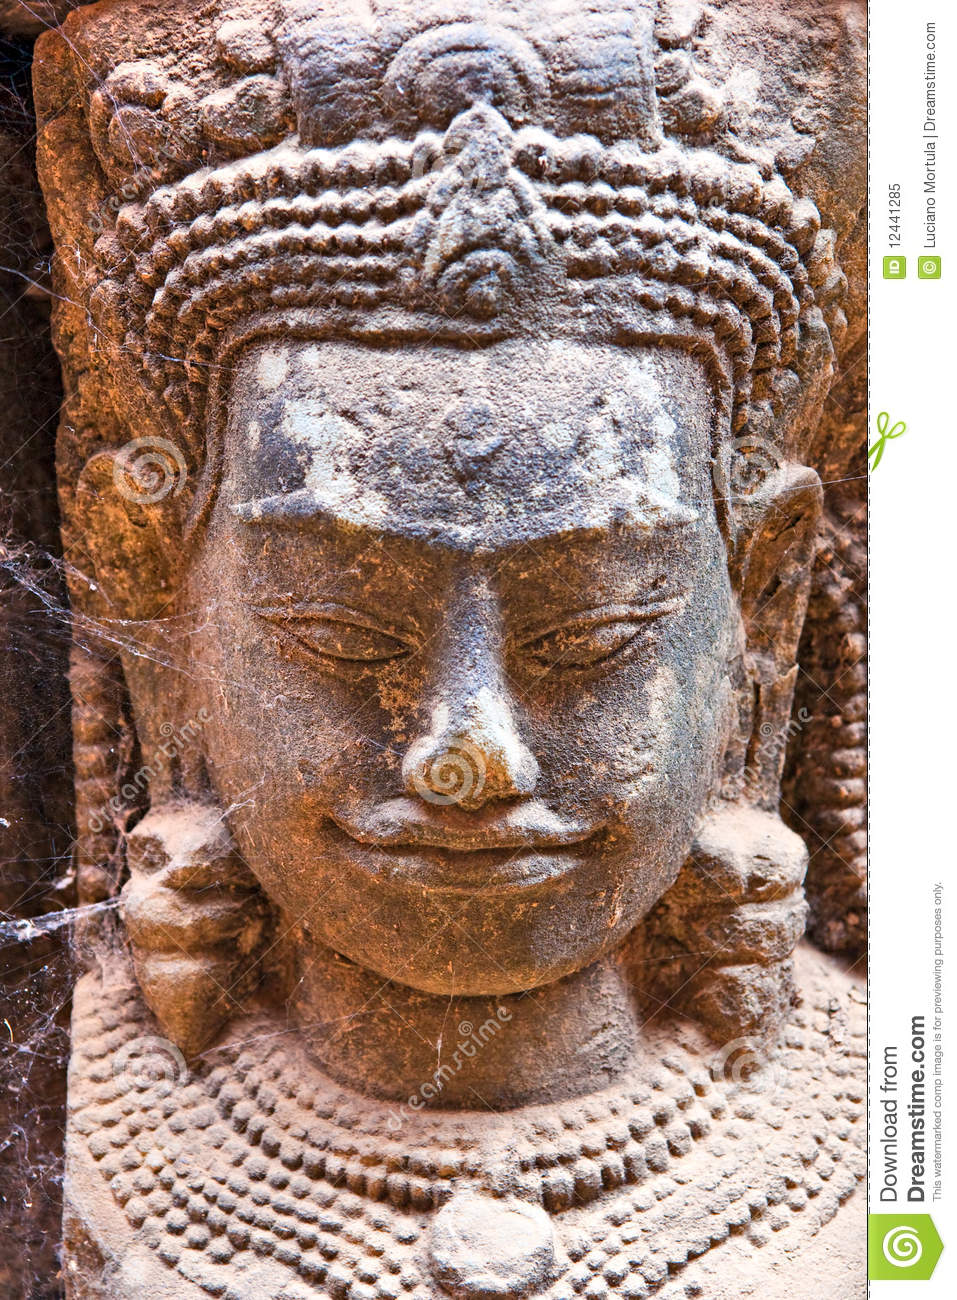 Apsara face carved on stone angkor wat cambodia stock